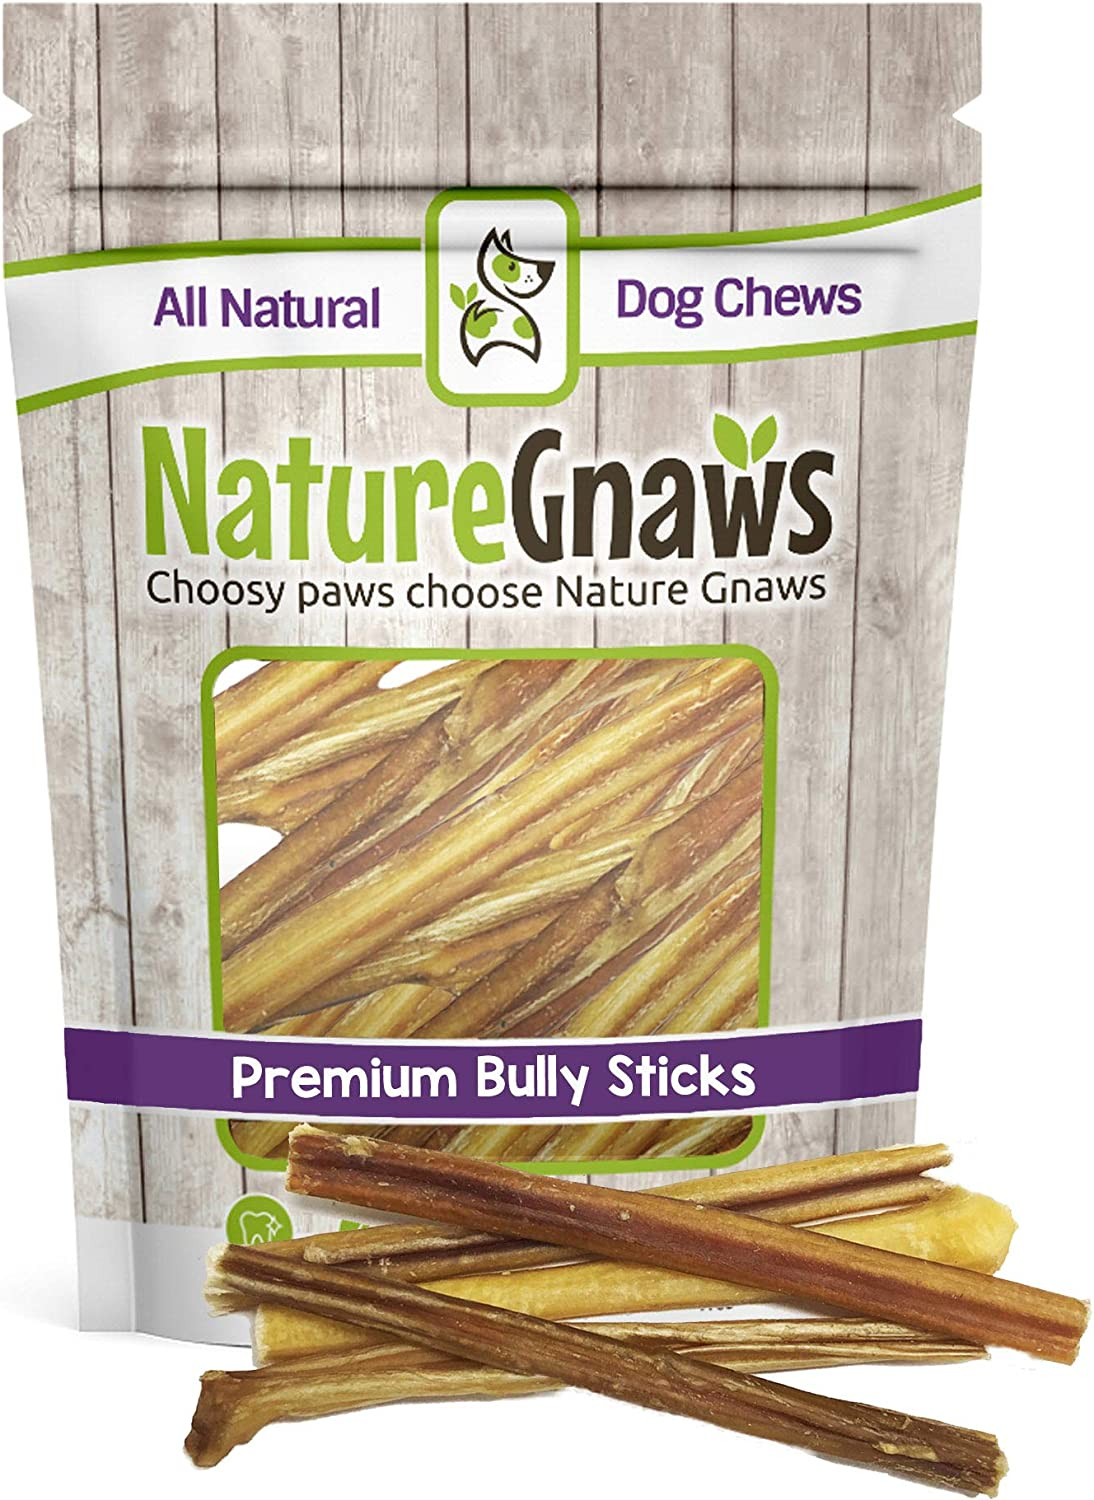 Nature Gnaws Extra Thin Bully Sticks 56  (25 Pack)  100% AllNatural GrassFed FreeRange Premium Beef Dog Chews